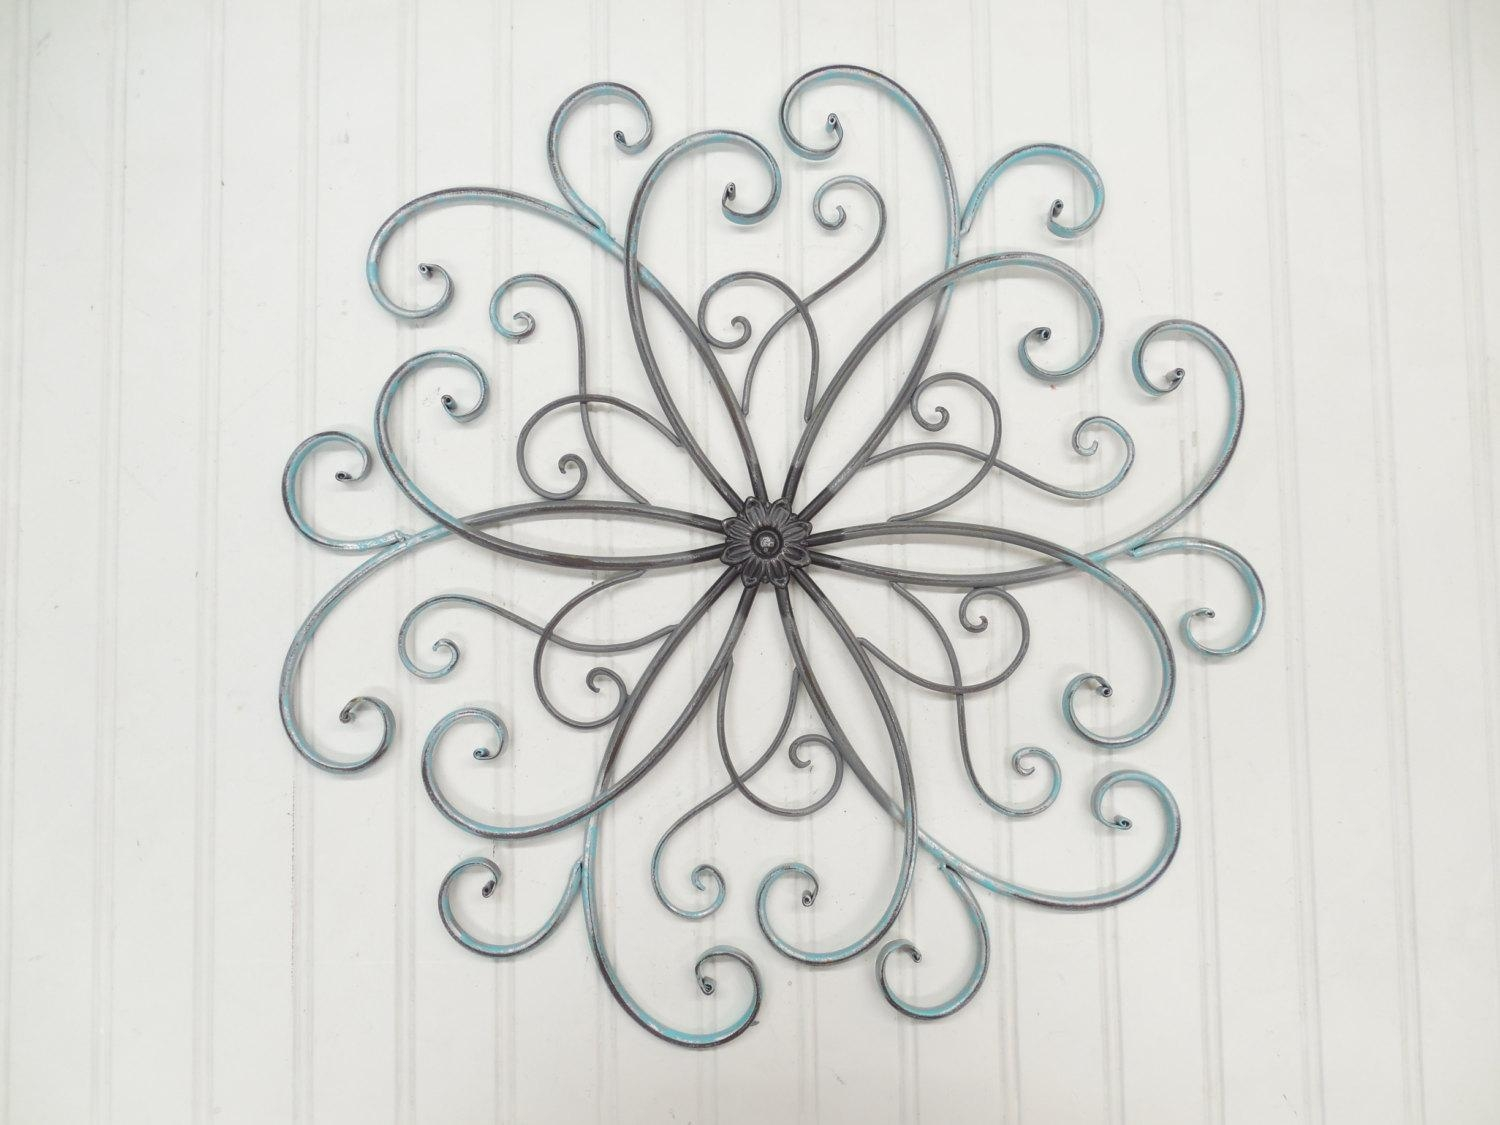 Tips & Ideas: Exciting Wrought Iron Wall Art For Interiors Intended For Wrought Iron Garden Wall Art (Image 11 of 20)